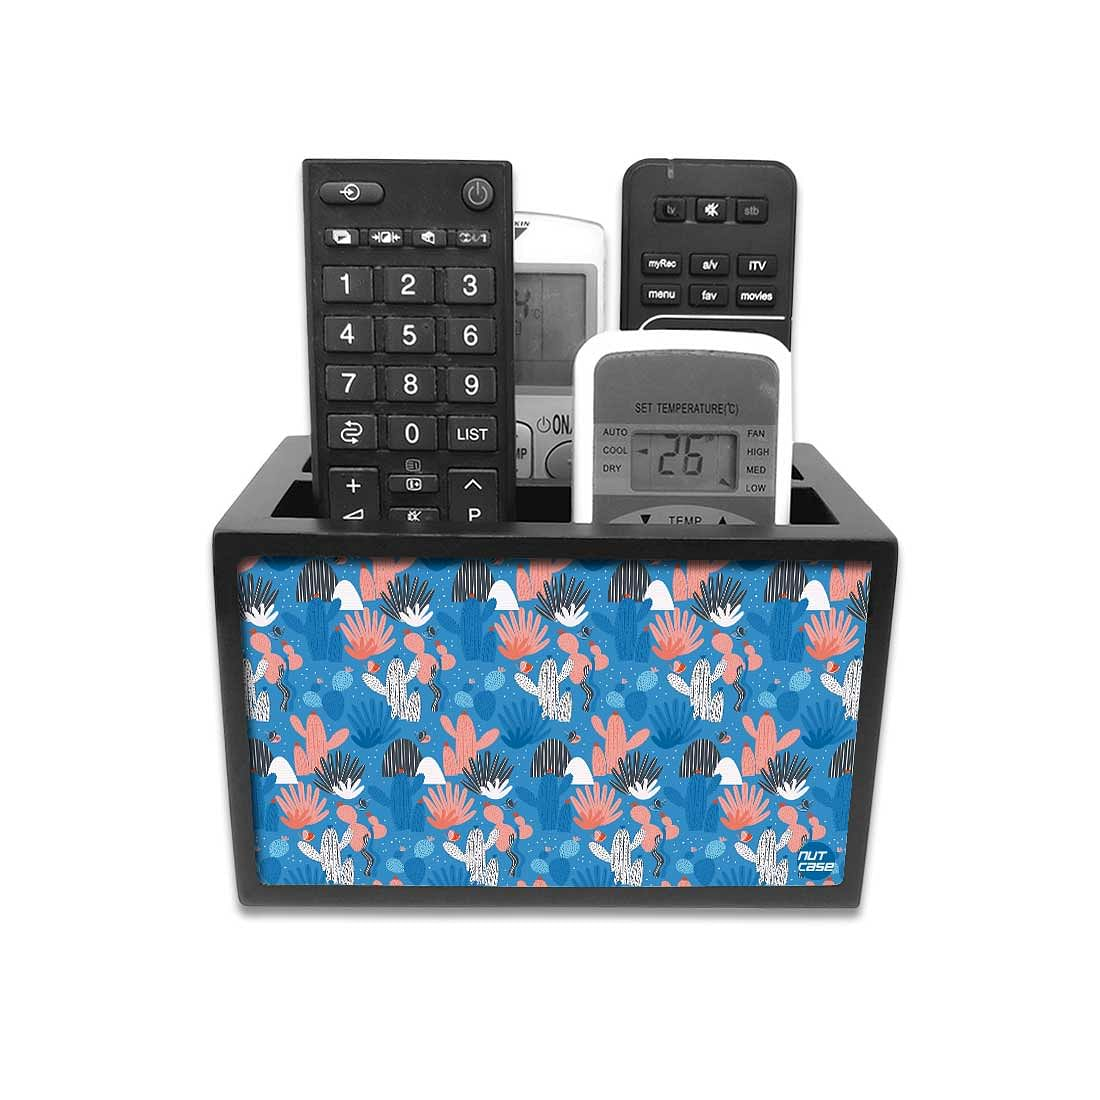 TvRemote Control Caddy Organizer